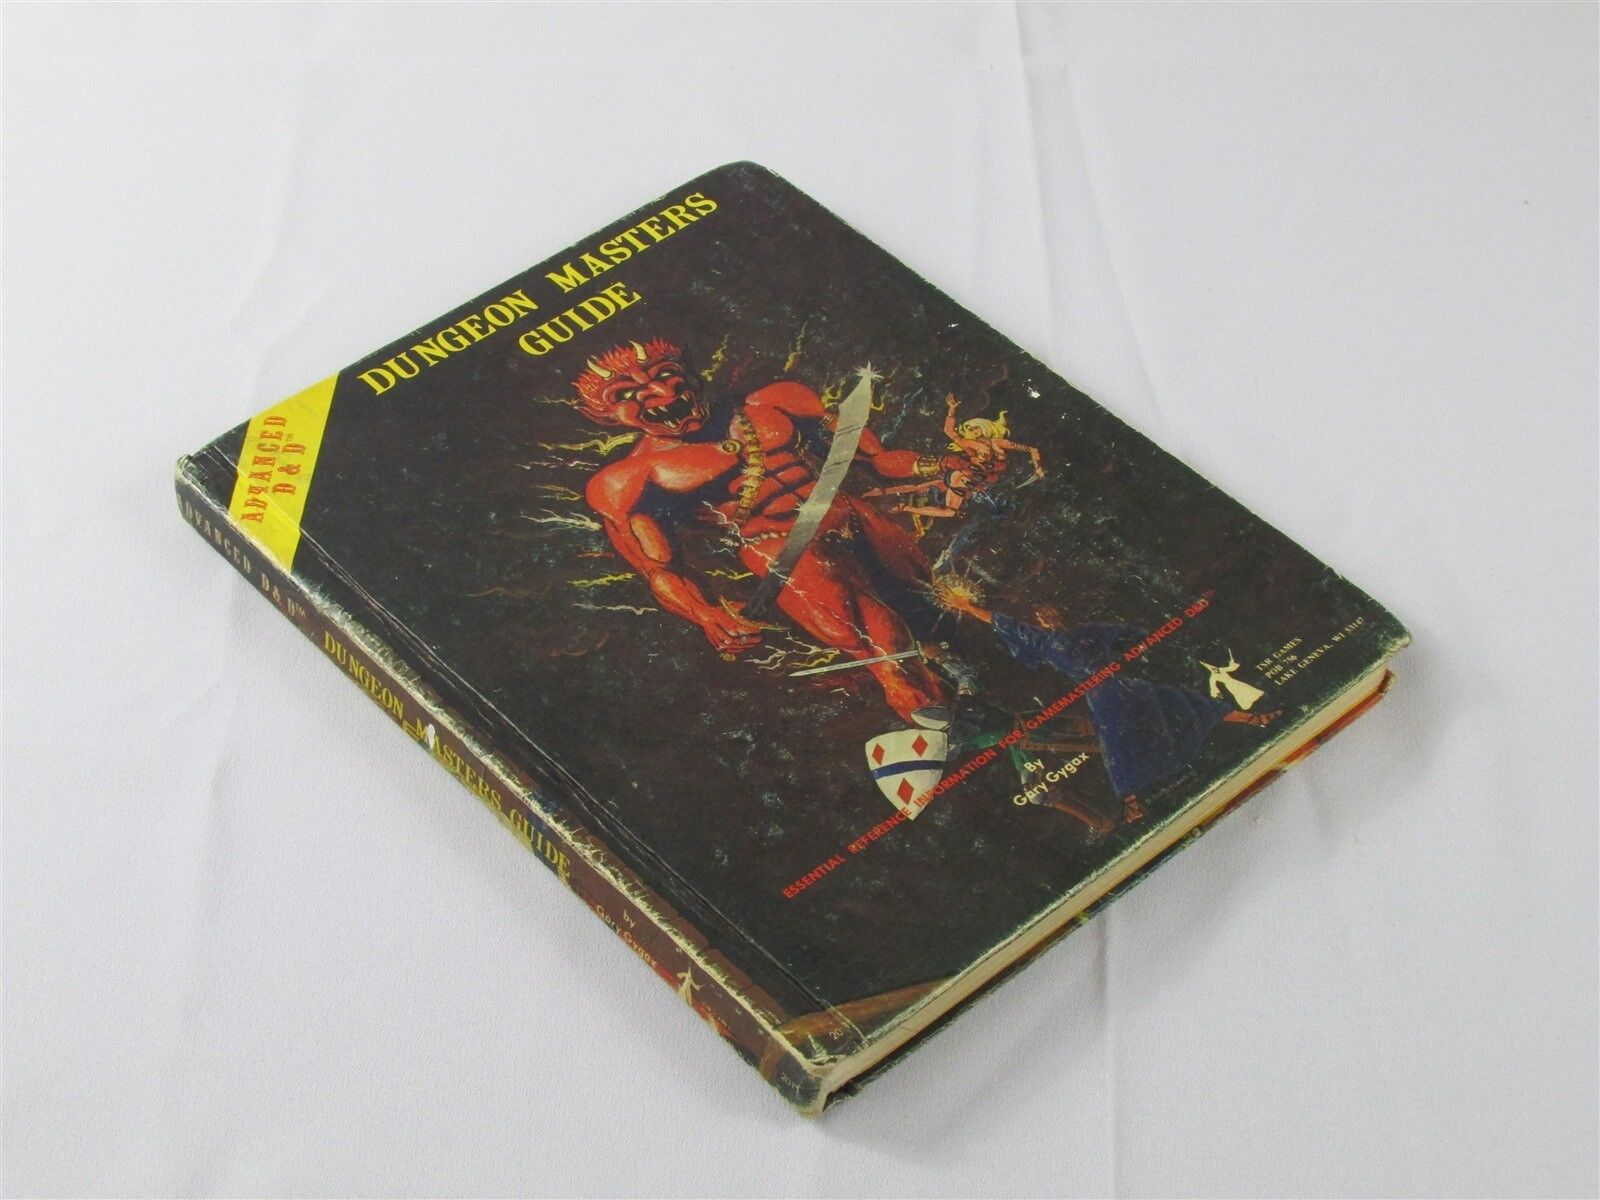 DUNGEON MASTERS GUIDE TSR spel 1979 gul PERSONER 3RD GAMMA